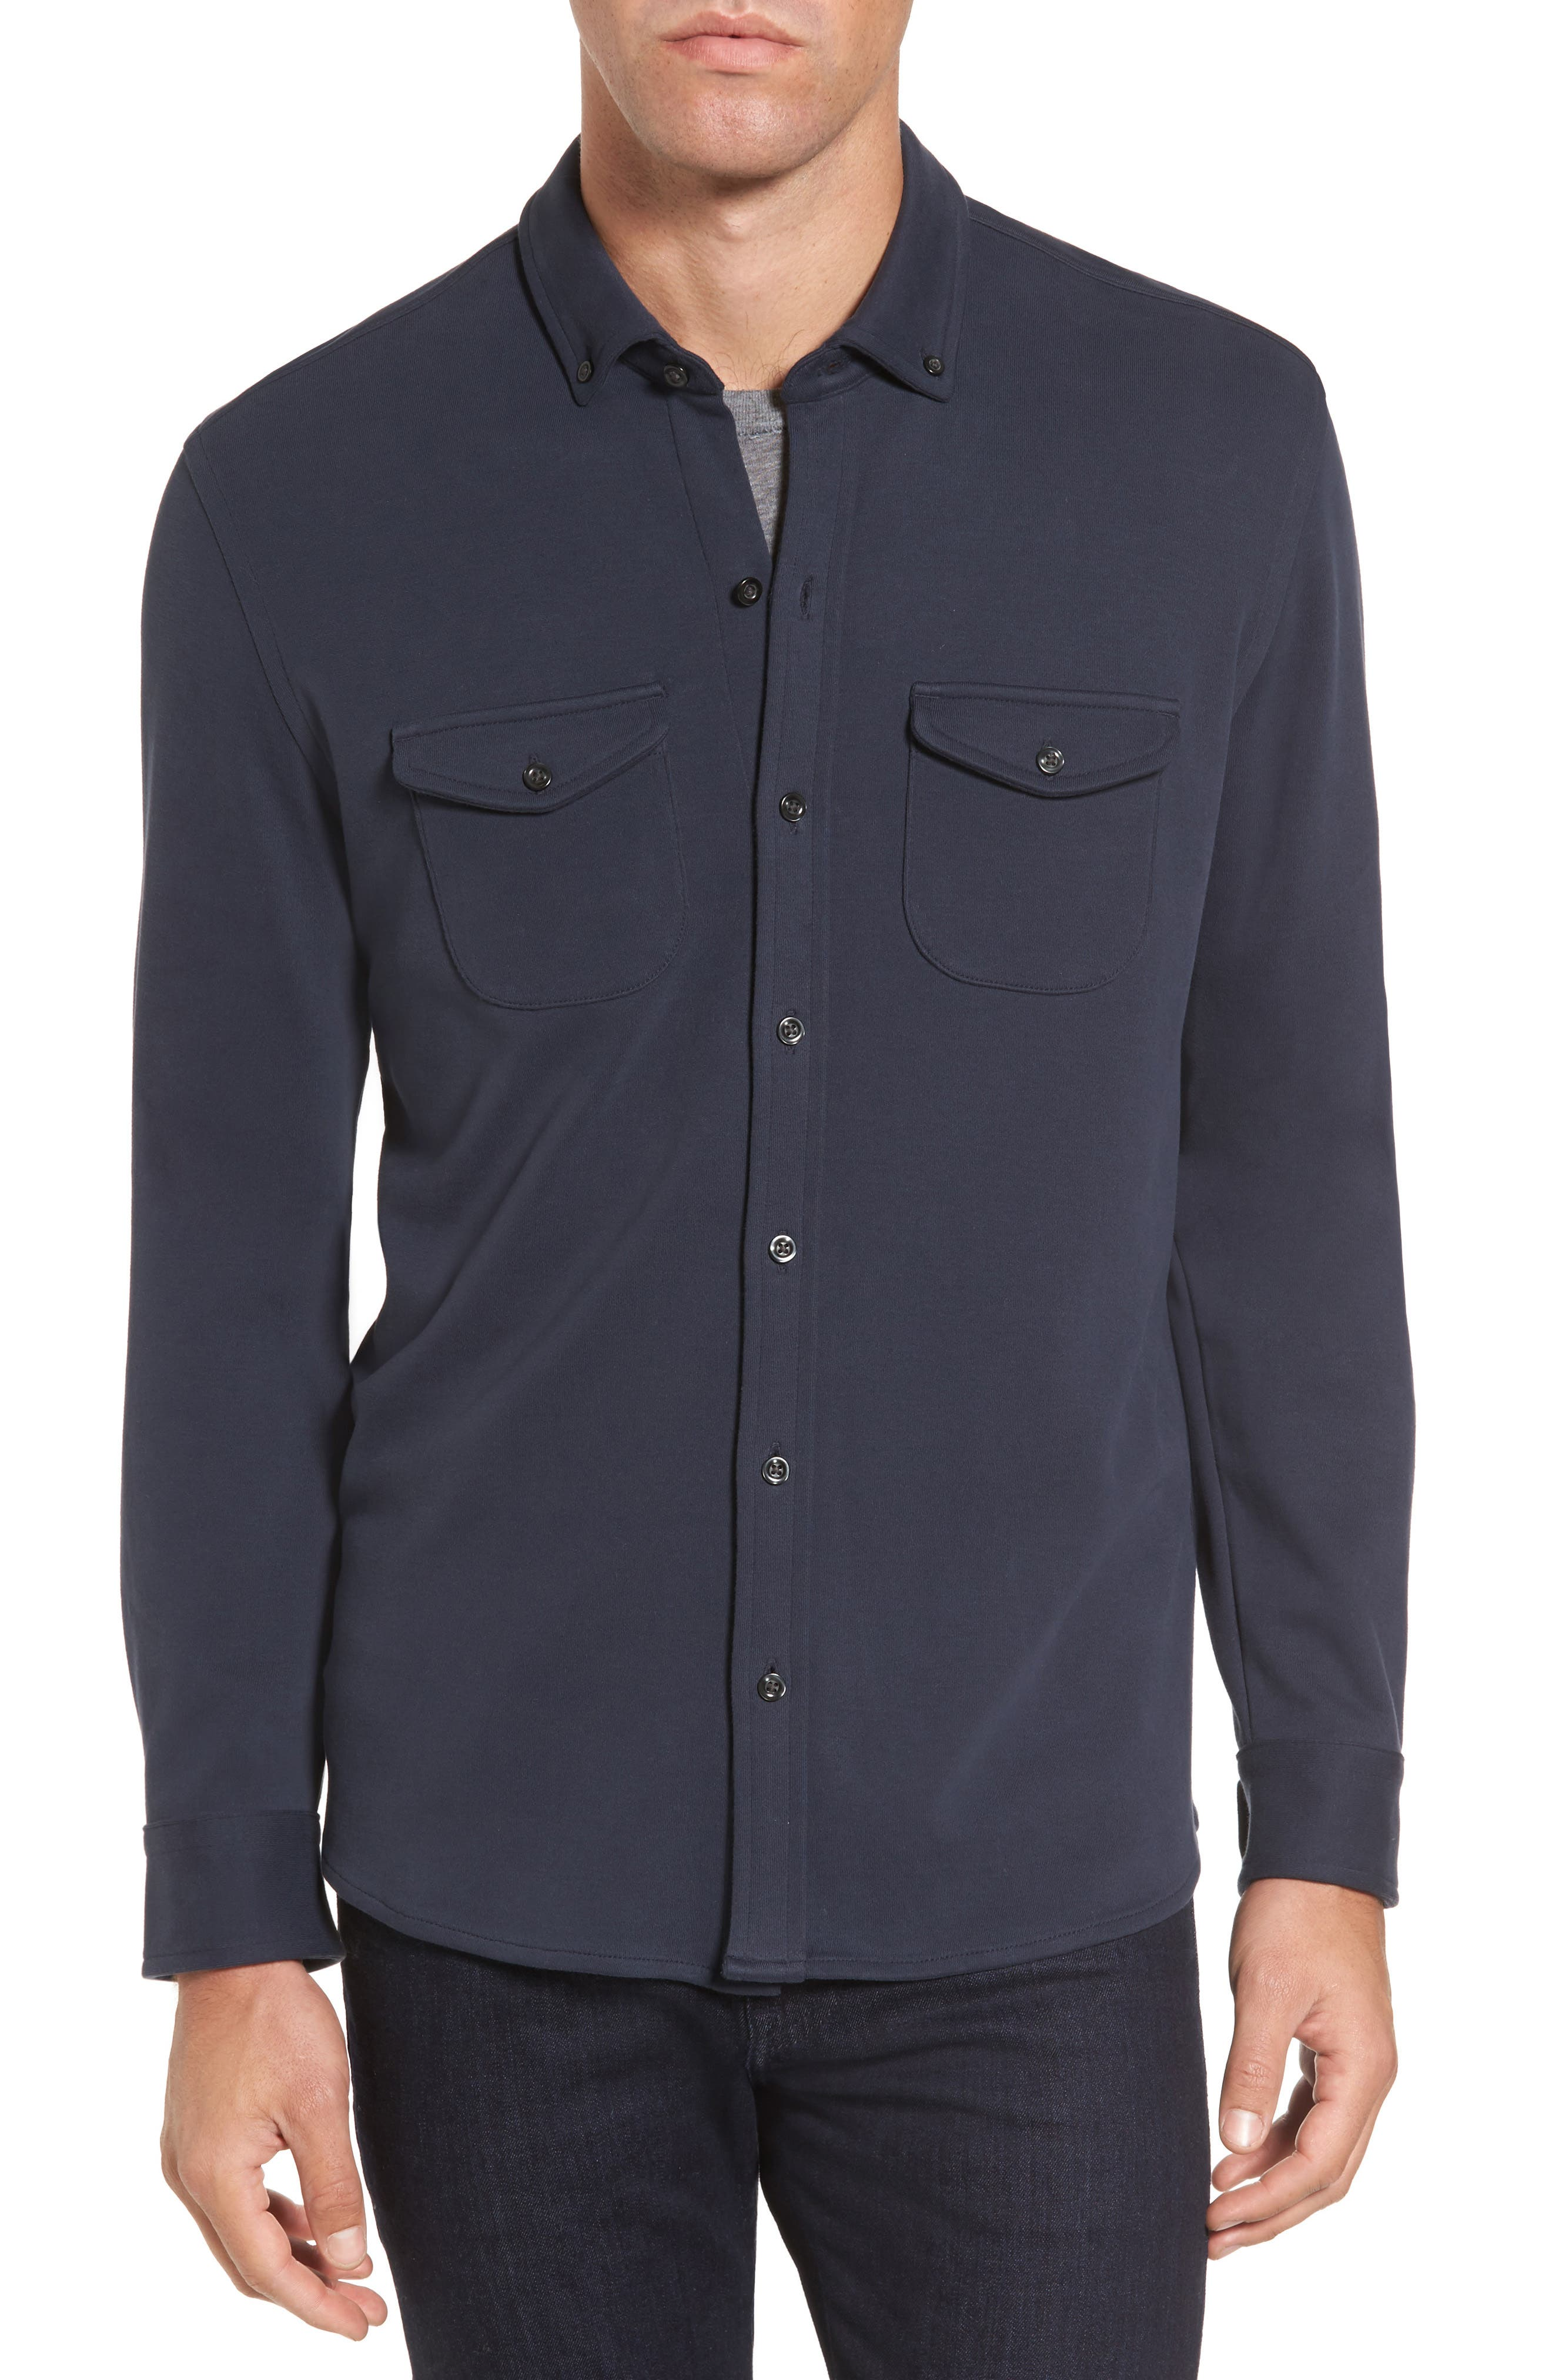 Main Image - Michael Bastian Trim Fit Pima Cotton Knit Sport Shirt